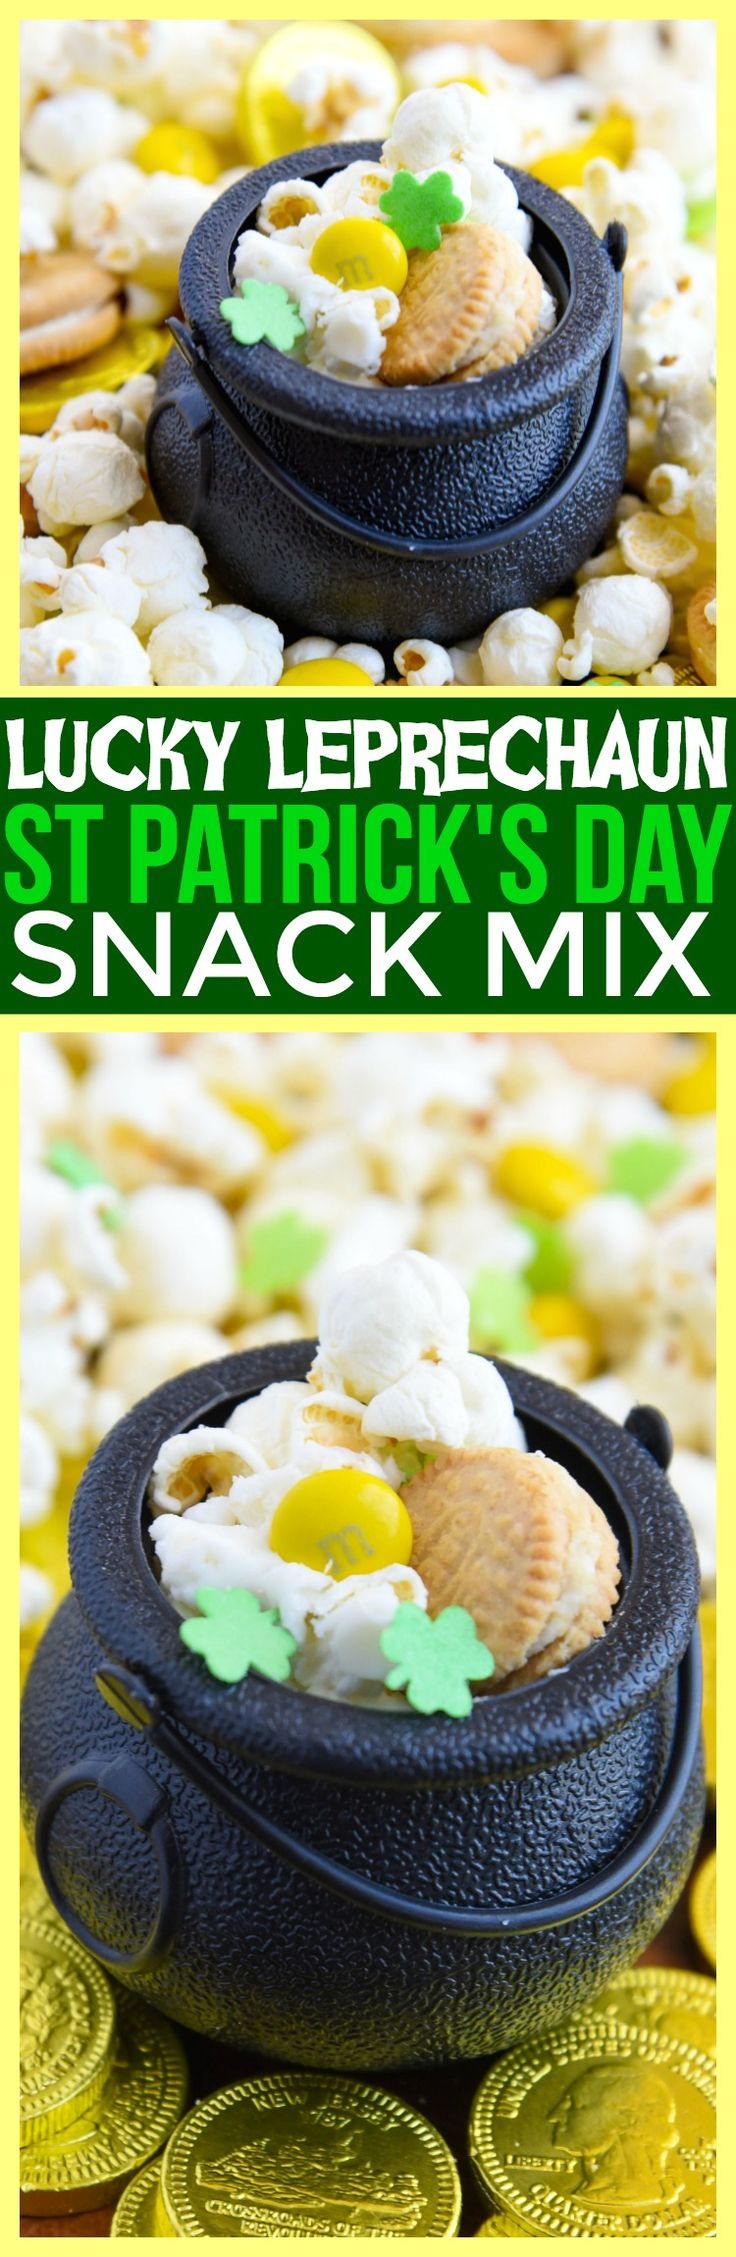 St Patrick's Day Snack Mix St Patrick's day snacks for kids st patricks day food leprechaun trap for kids Mini Chef Mondays cooking with kids via @CourtneysSweets